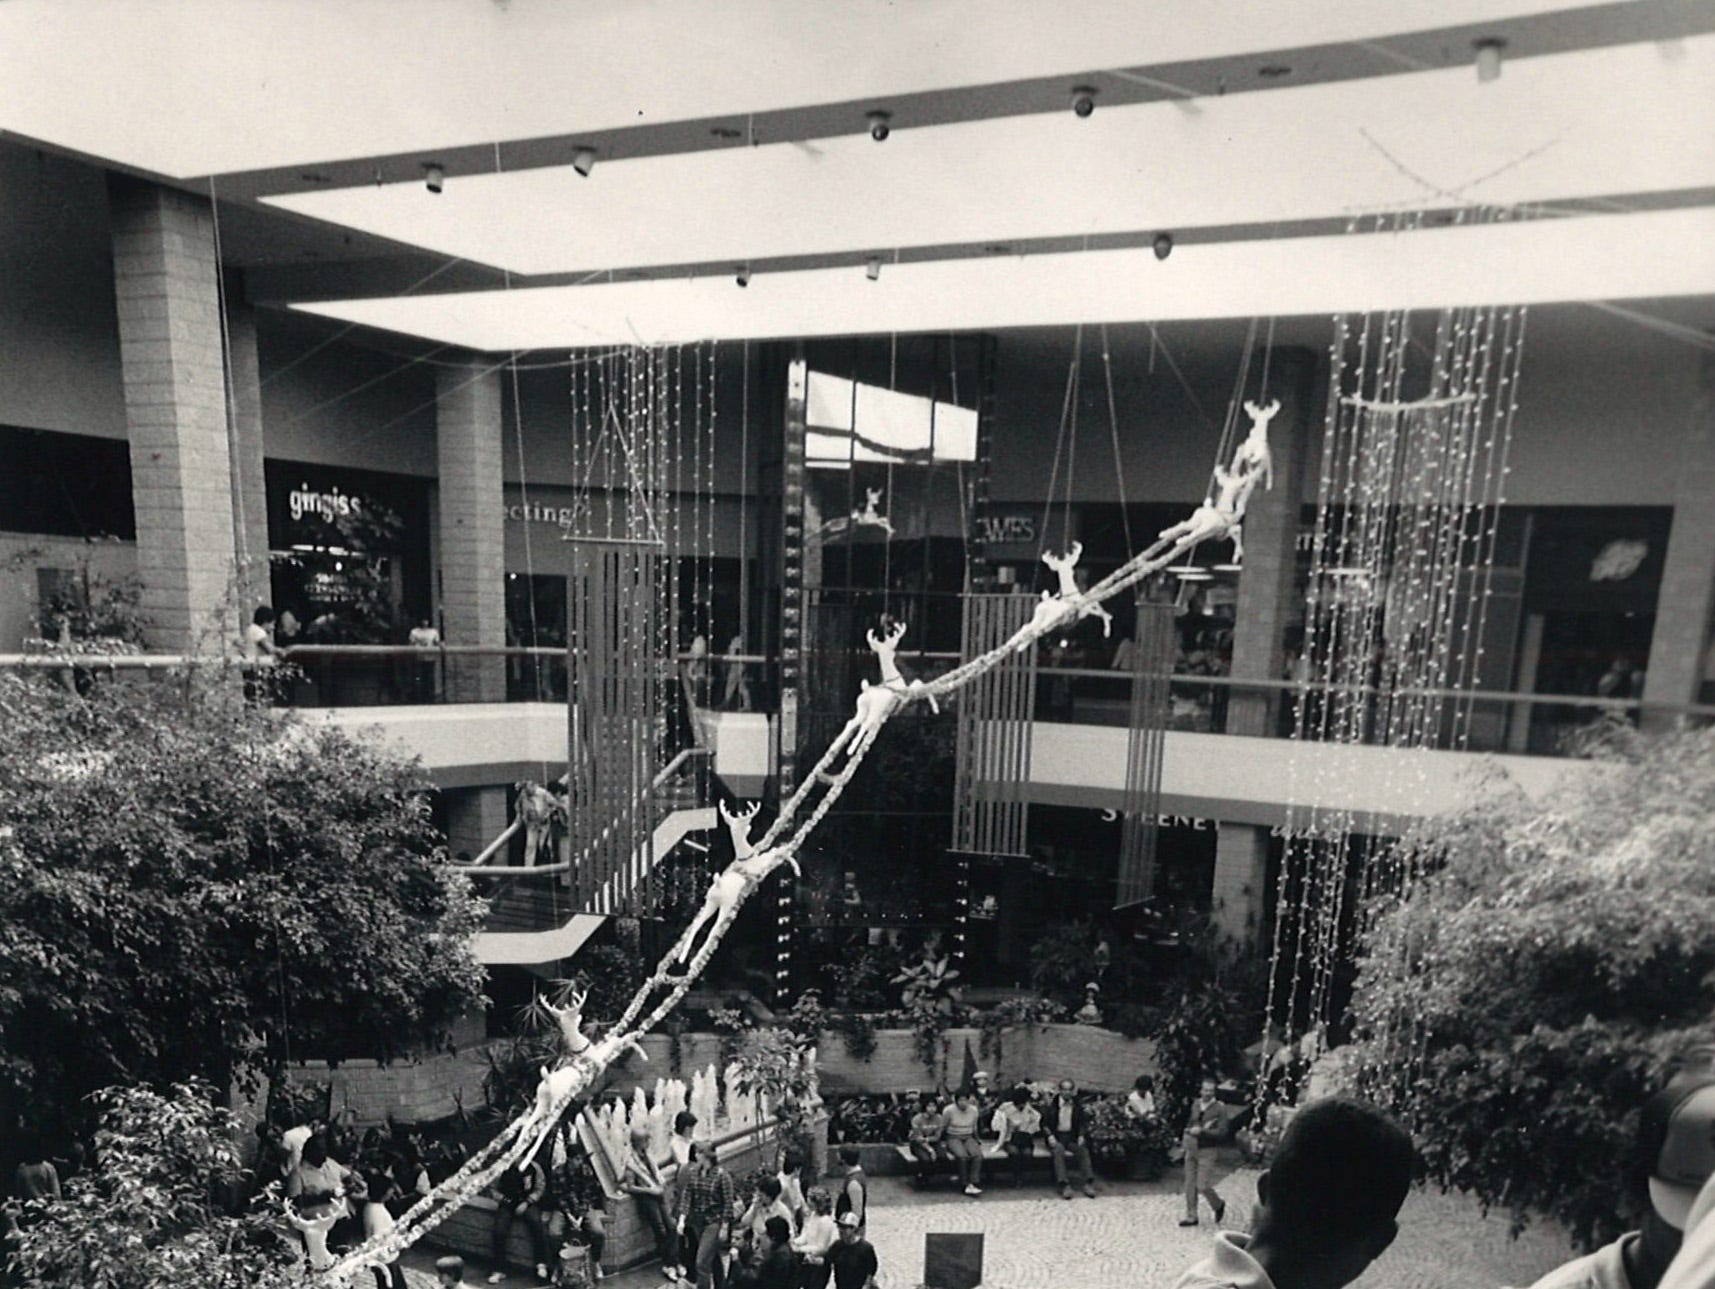 Shoppers take the escalators in the central atrium on Sunrise Mall on Nov. 23, 1984.